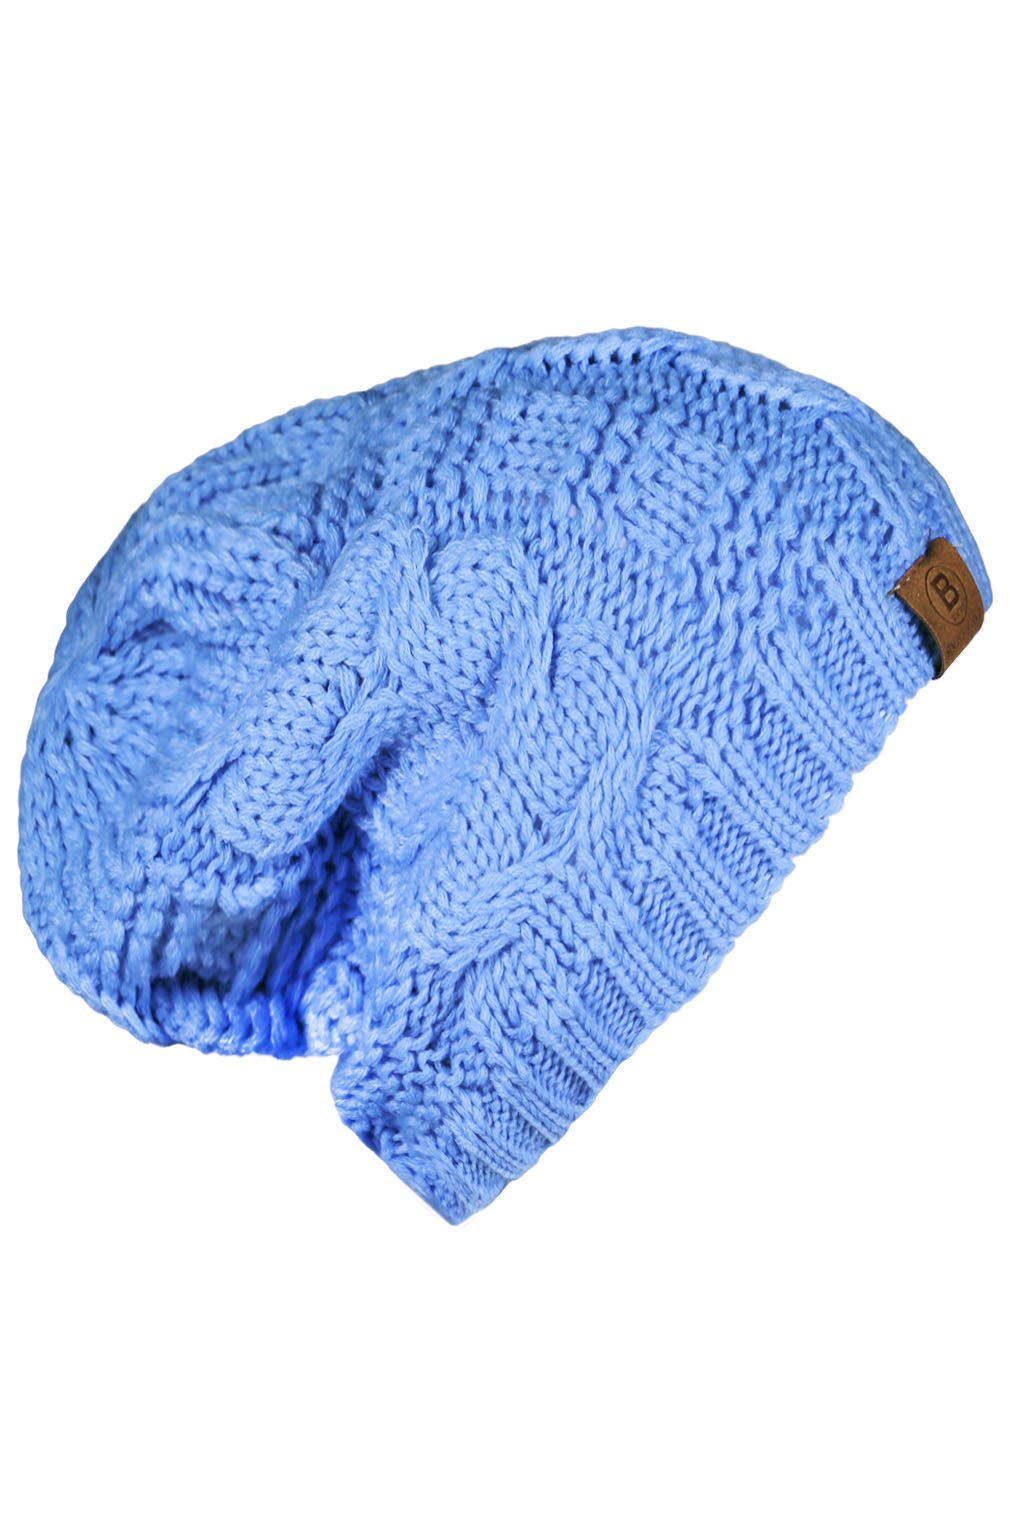 Basico Unisex Warm Chunky Soft Stretch Cable Knit Beanie Cap Hat (Baby Blue-102)